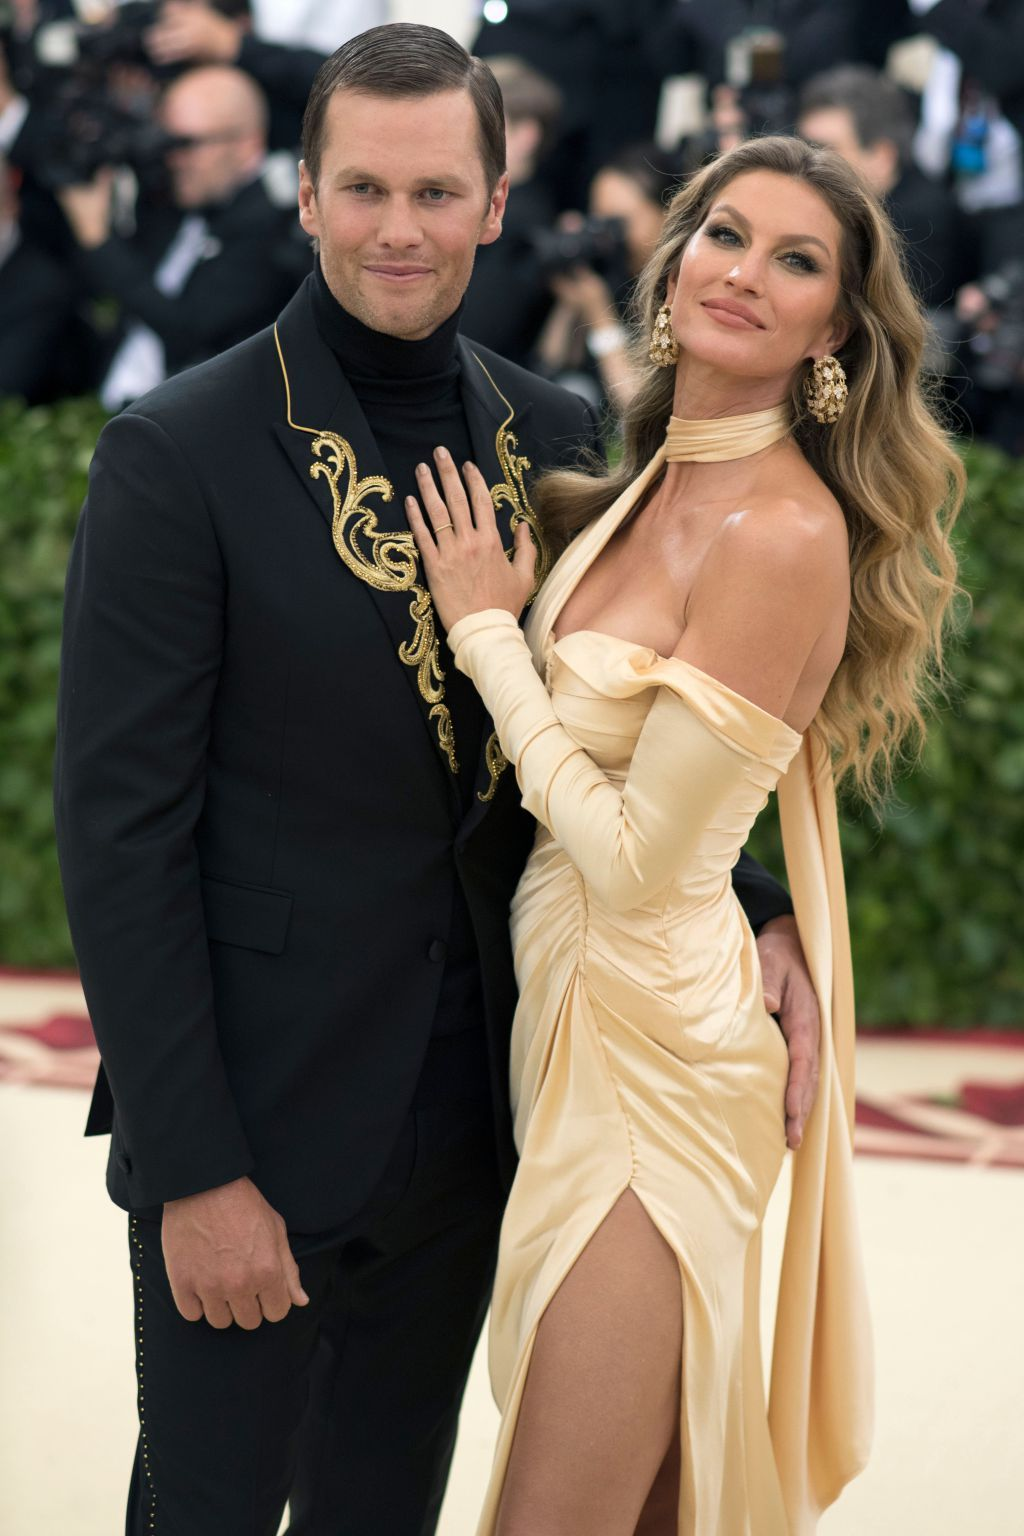 Met Gala 2018: Rihanna, Blake Lively and More on the Red ...